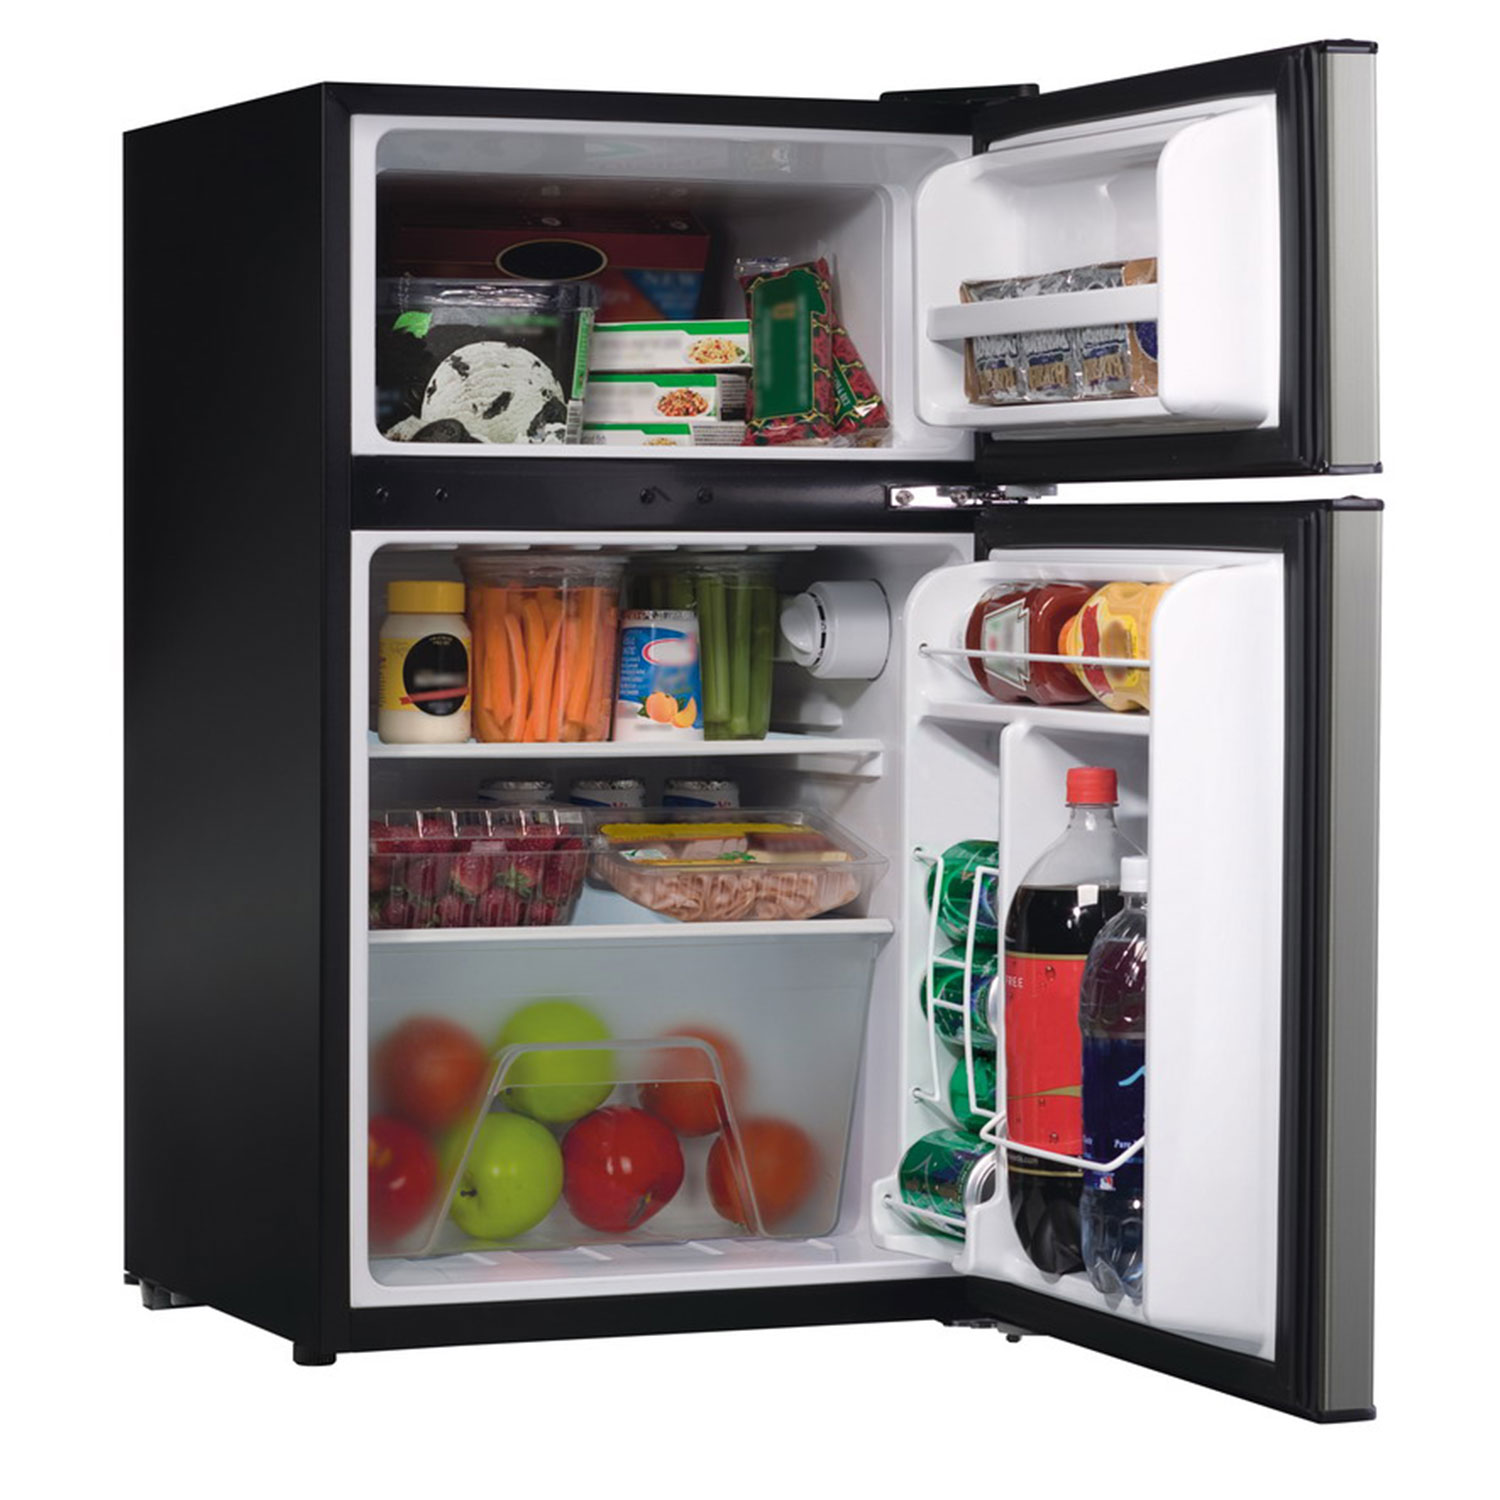 Compact Refrigerator with Reversible Double Door Top Mounted Freezer, 3.1 Cubic Feet, Silver (86101)